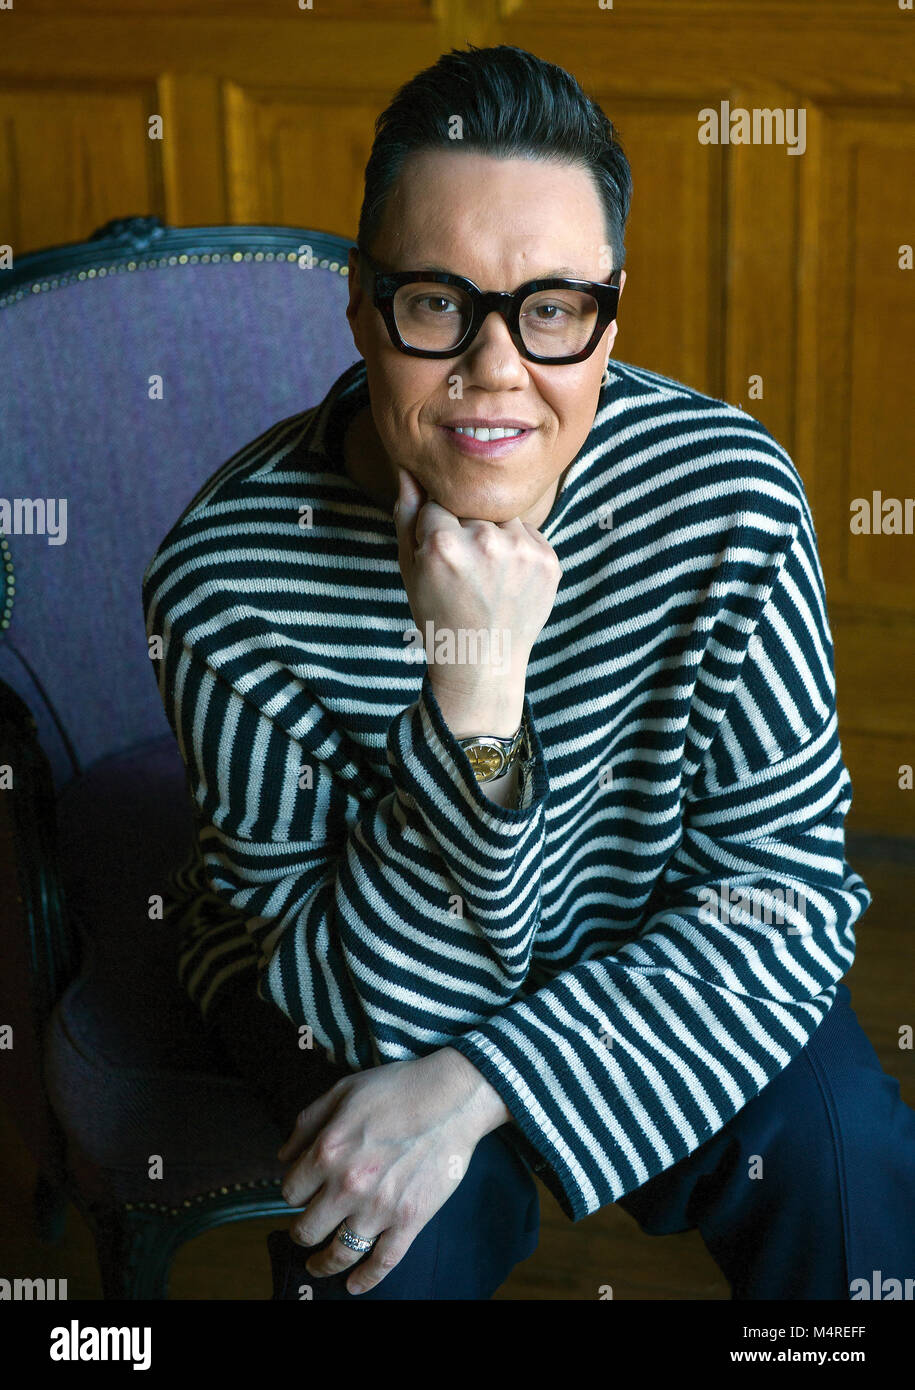 Gok Wan, English fashion consultant, author and television presenter, Edinburgh. - Stock Image